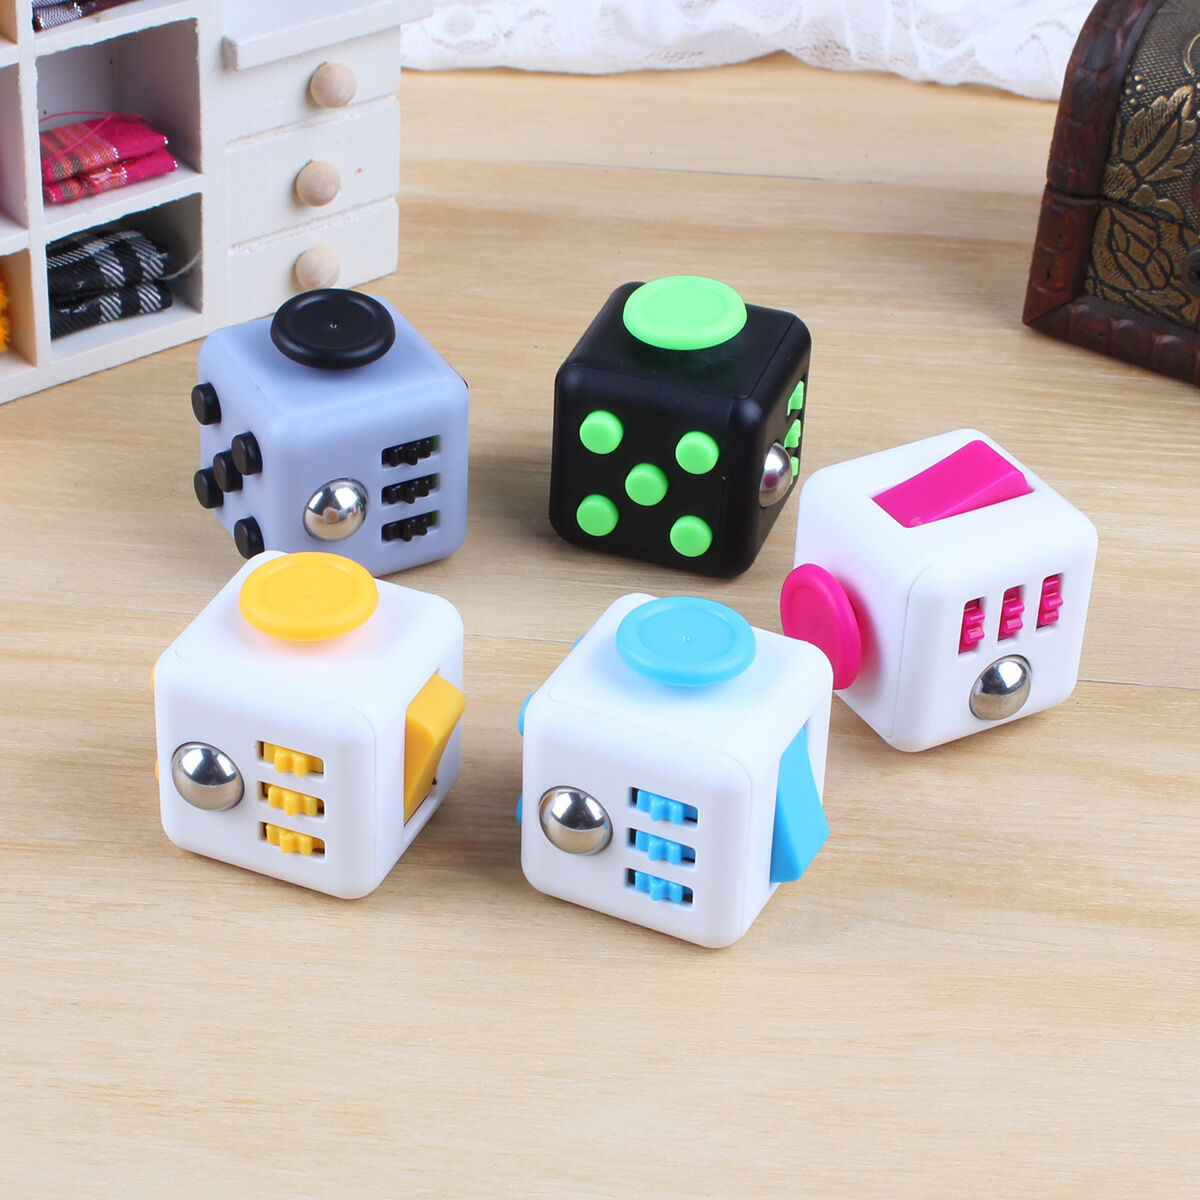 Stress Relief Toys : Fidget cube anxiety stress relief focus gift adults kids